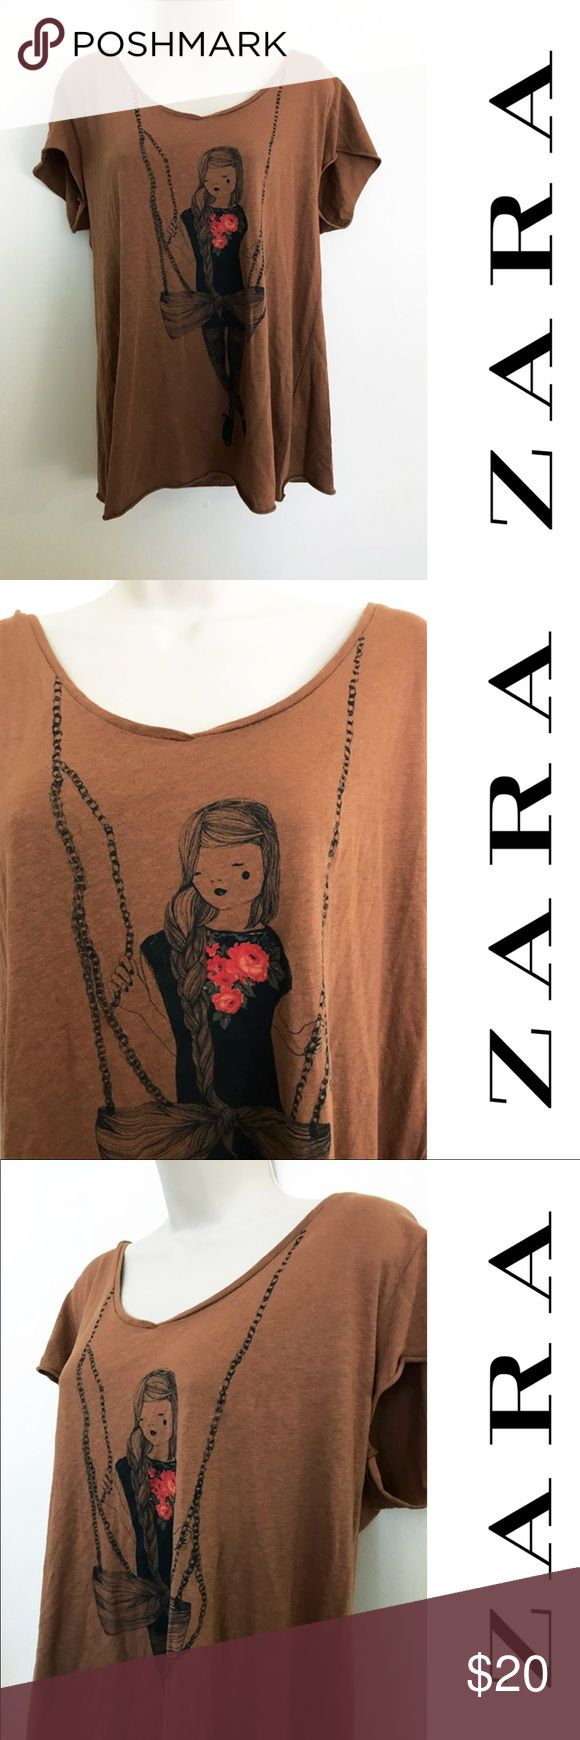 Suuuper cute Zara Tshirt with illustration Adorable! And a nice chocolate color - size Large - lightweight and comfortable - very cute illustration 😻 Zara Tops Tees - Short Sleeve